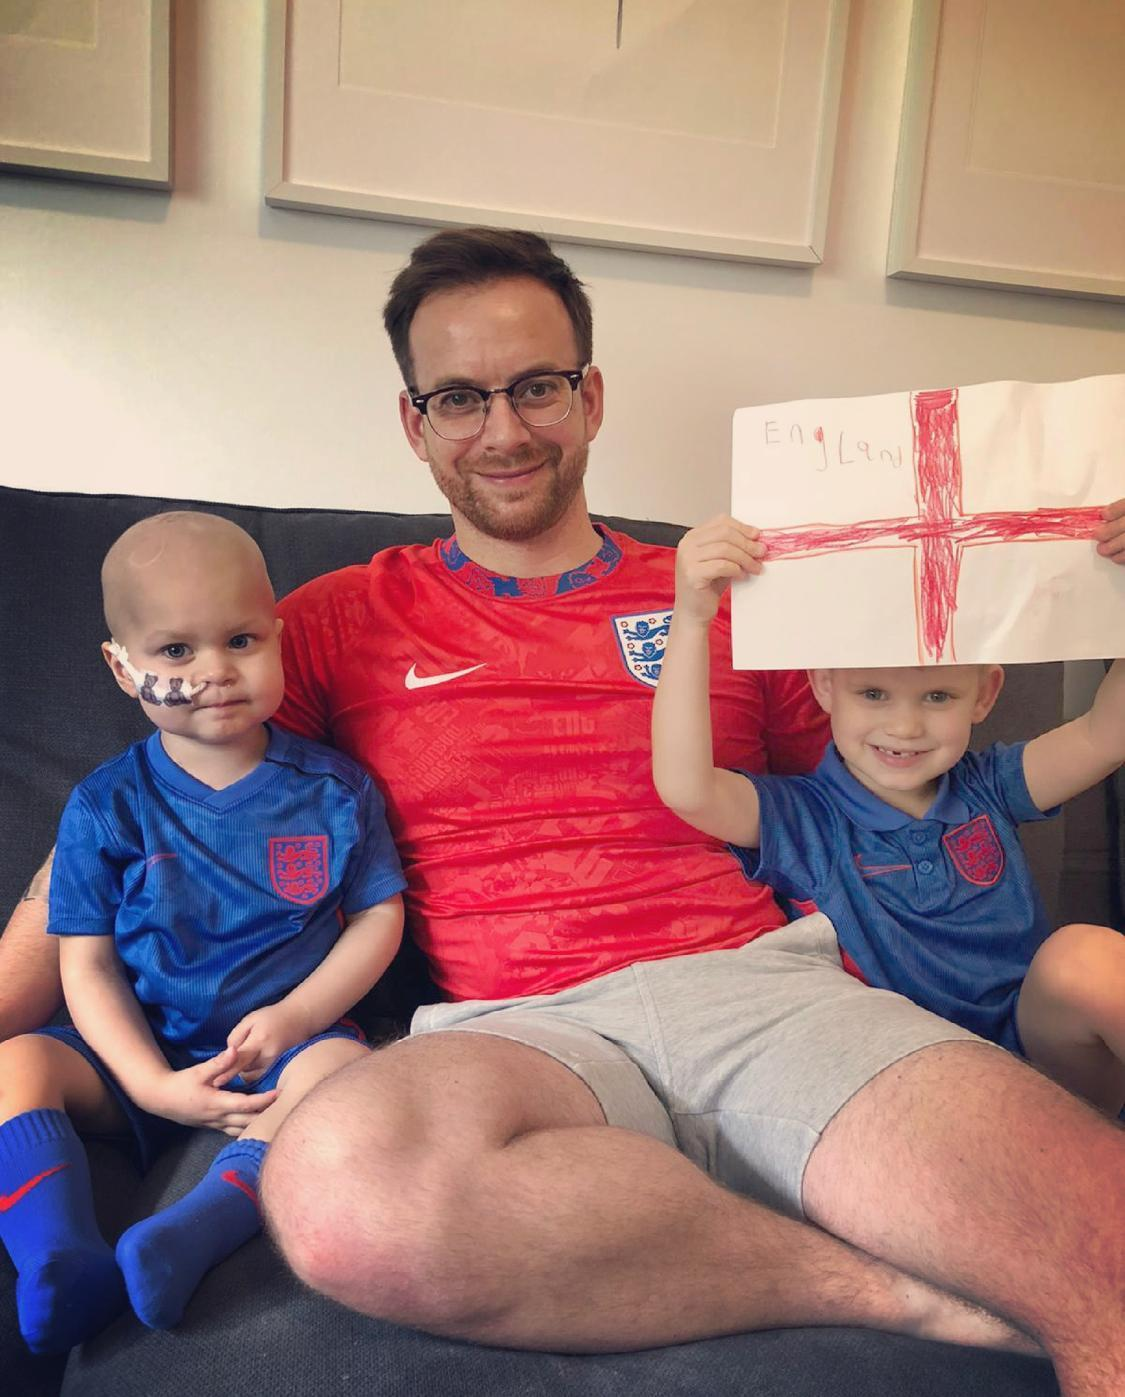 The toddler's father Matt Crick said the message had 'cheered us all up' (Brain Tumour Research/PA)